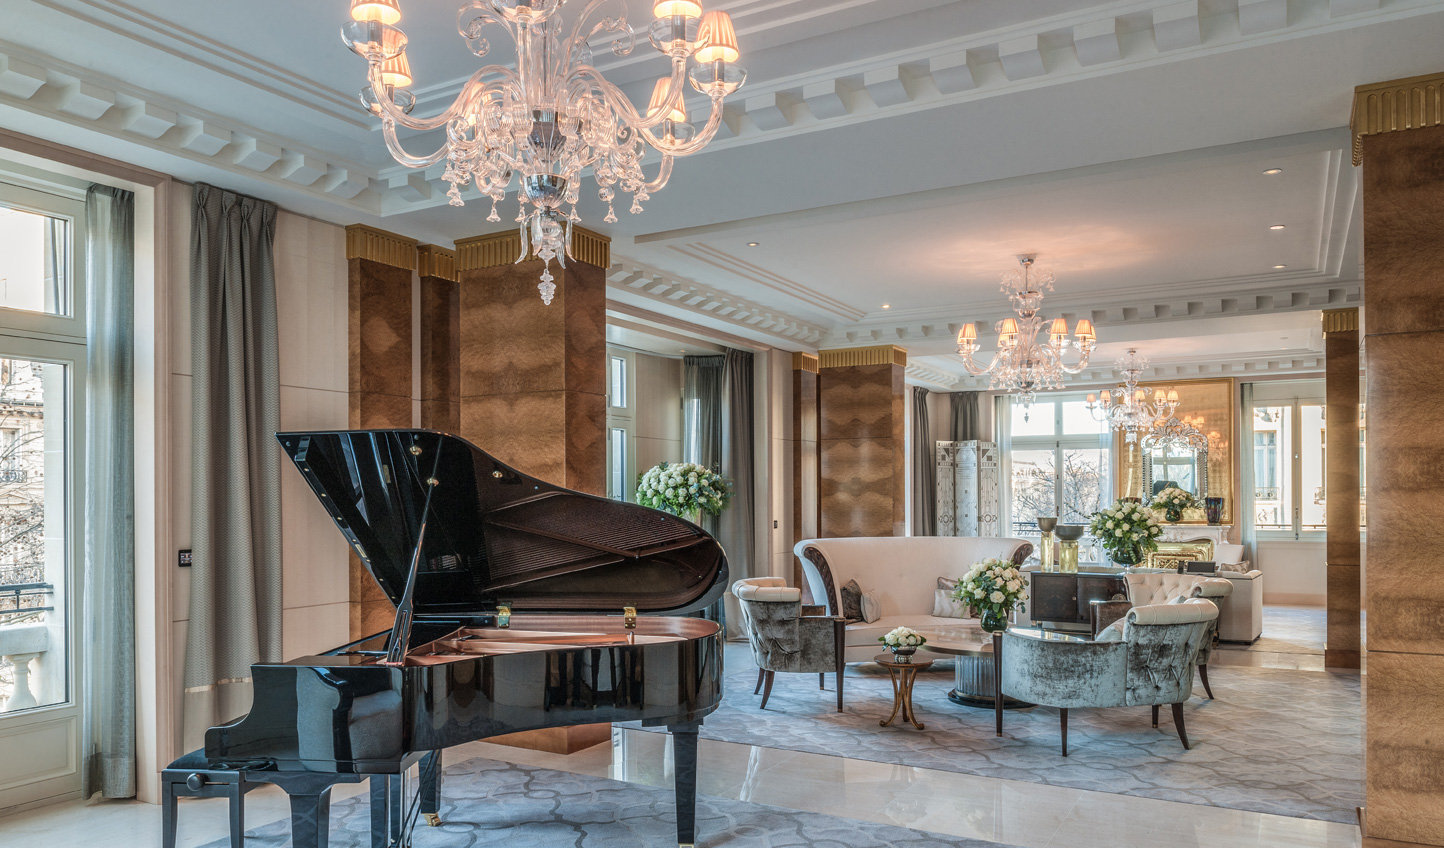 The Peninsula Suite complete with grand piano